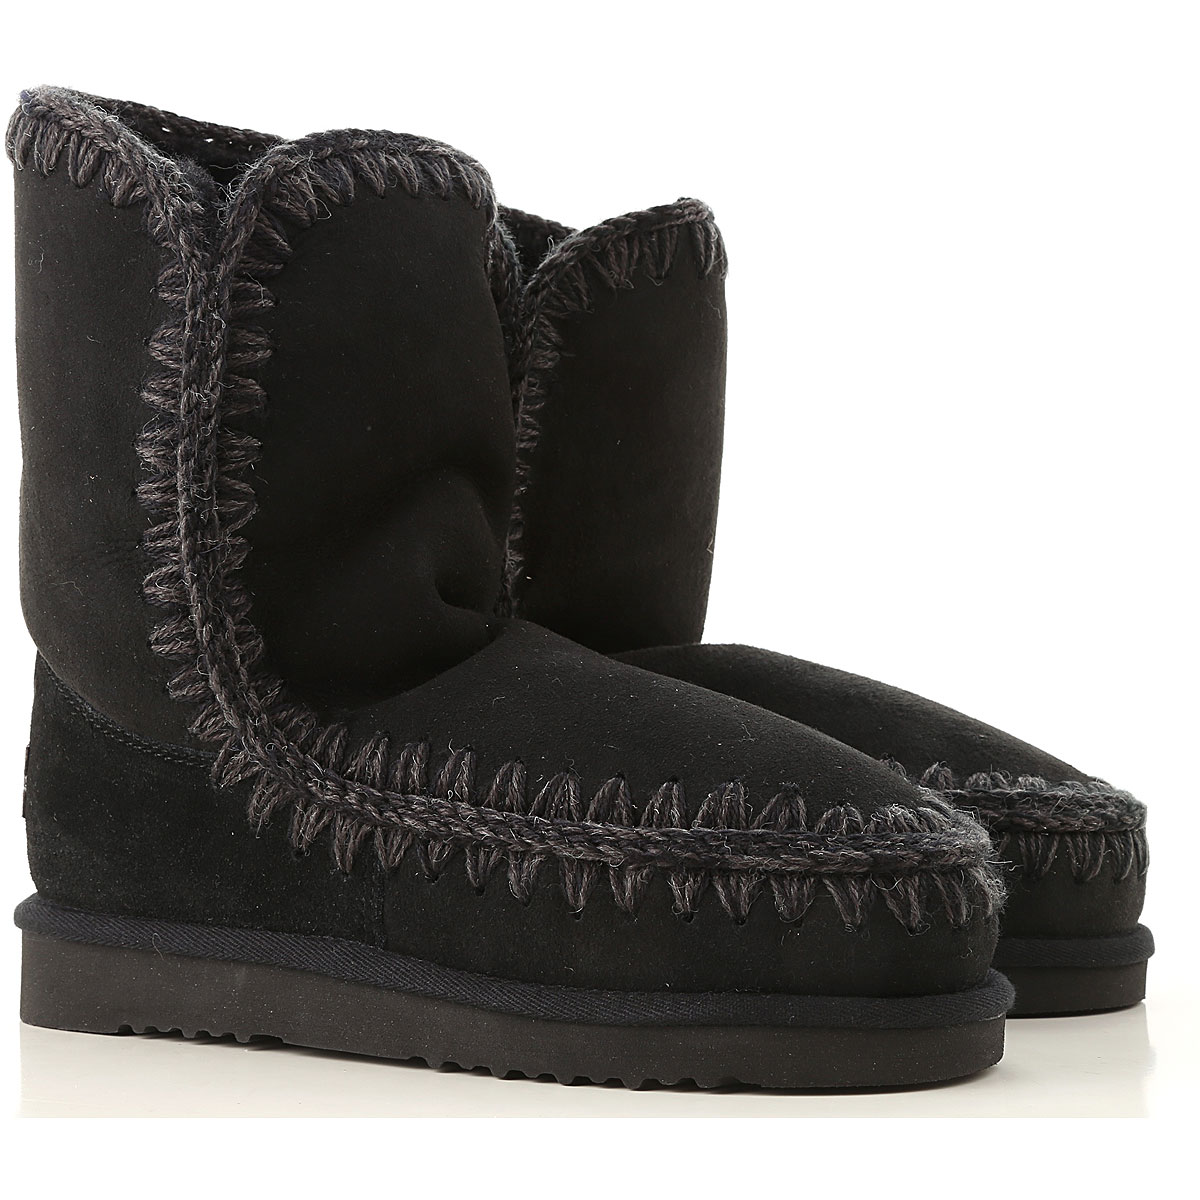 Mou Boots for Women, Booties On Sale in Outlet, Black, Suede leather, 2019, EUR 38 - UK 5 - USA 7 EUR 36 - UK 3 - USA 5.5 EUR 37 - UK 4 - USA 6.5 EUR